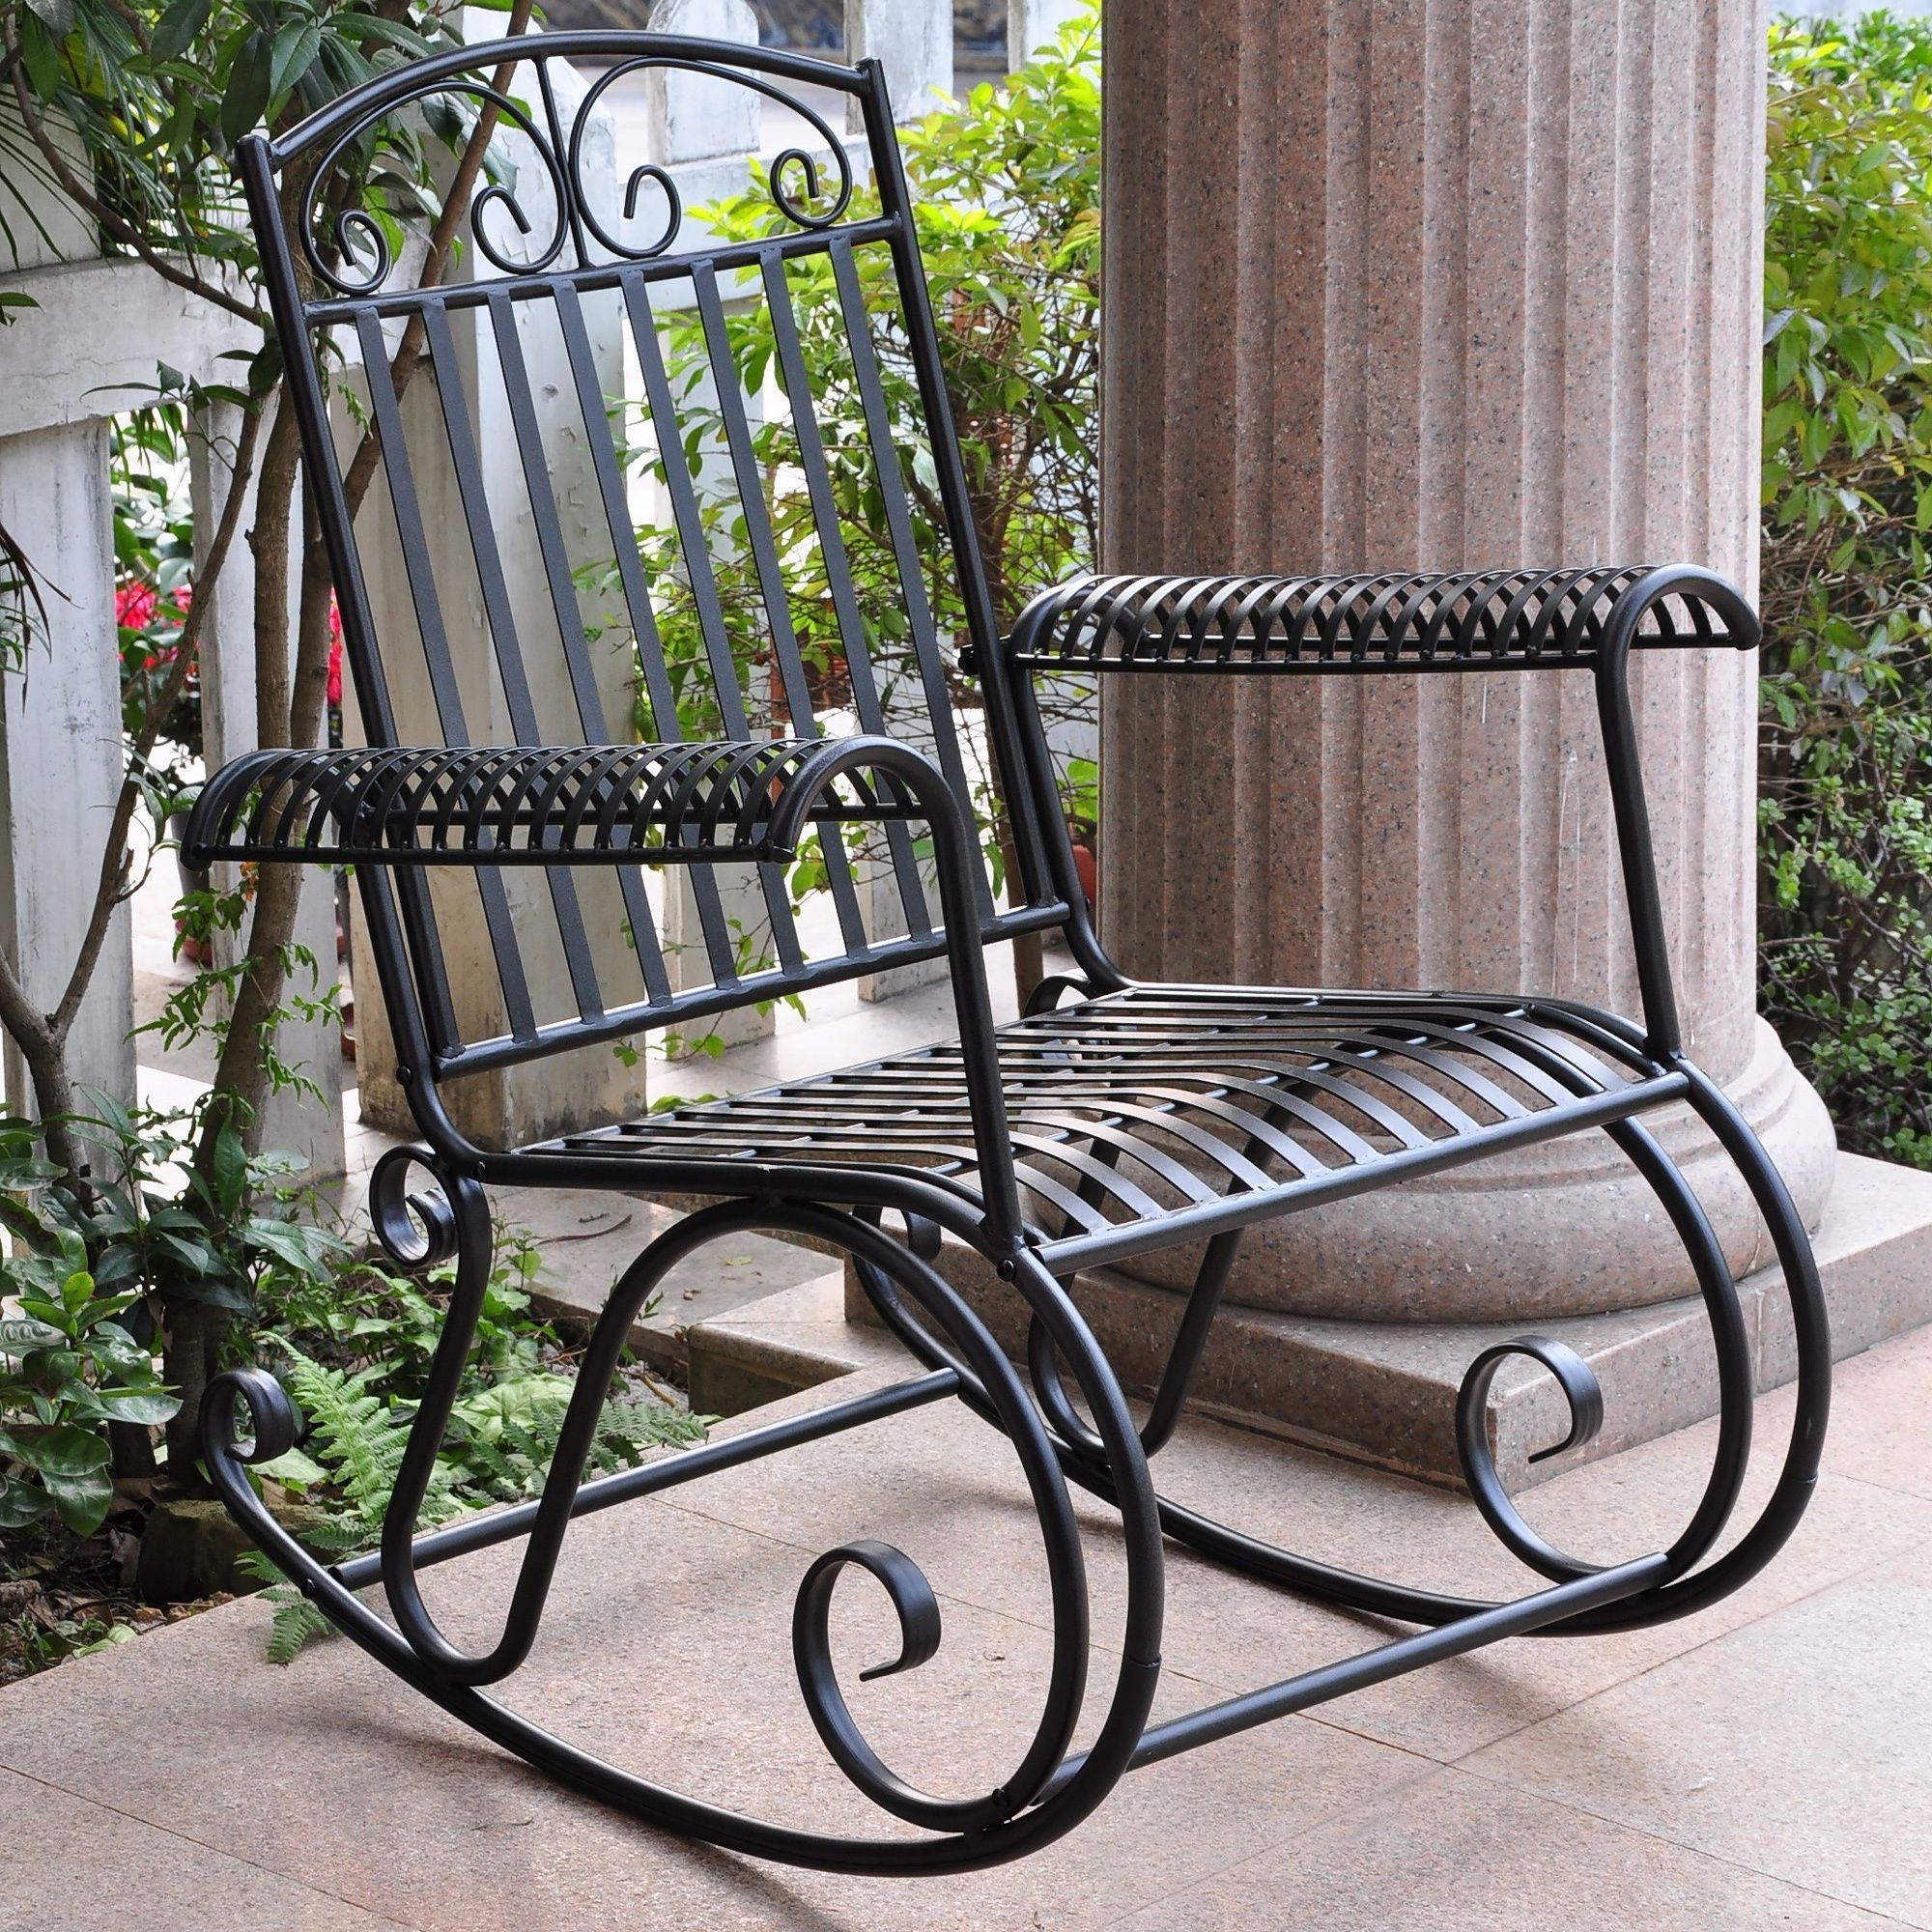 Trendy Wrought Iron Patio Rocking Chairs With Wrought Iron Chairs With Upholstered Cushions At An Outdoor Seating (View 7 of 15)